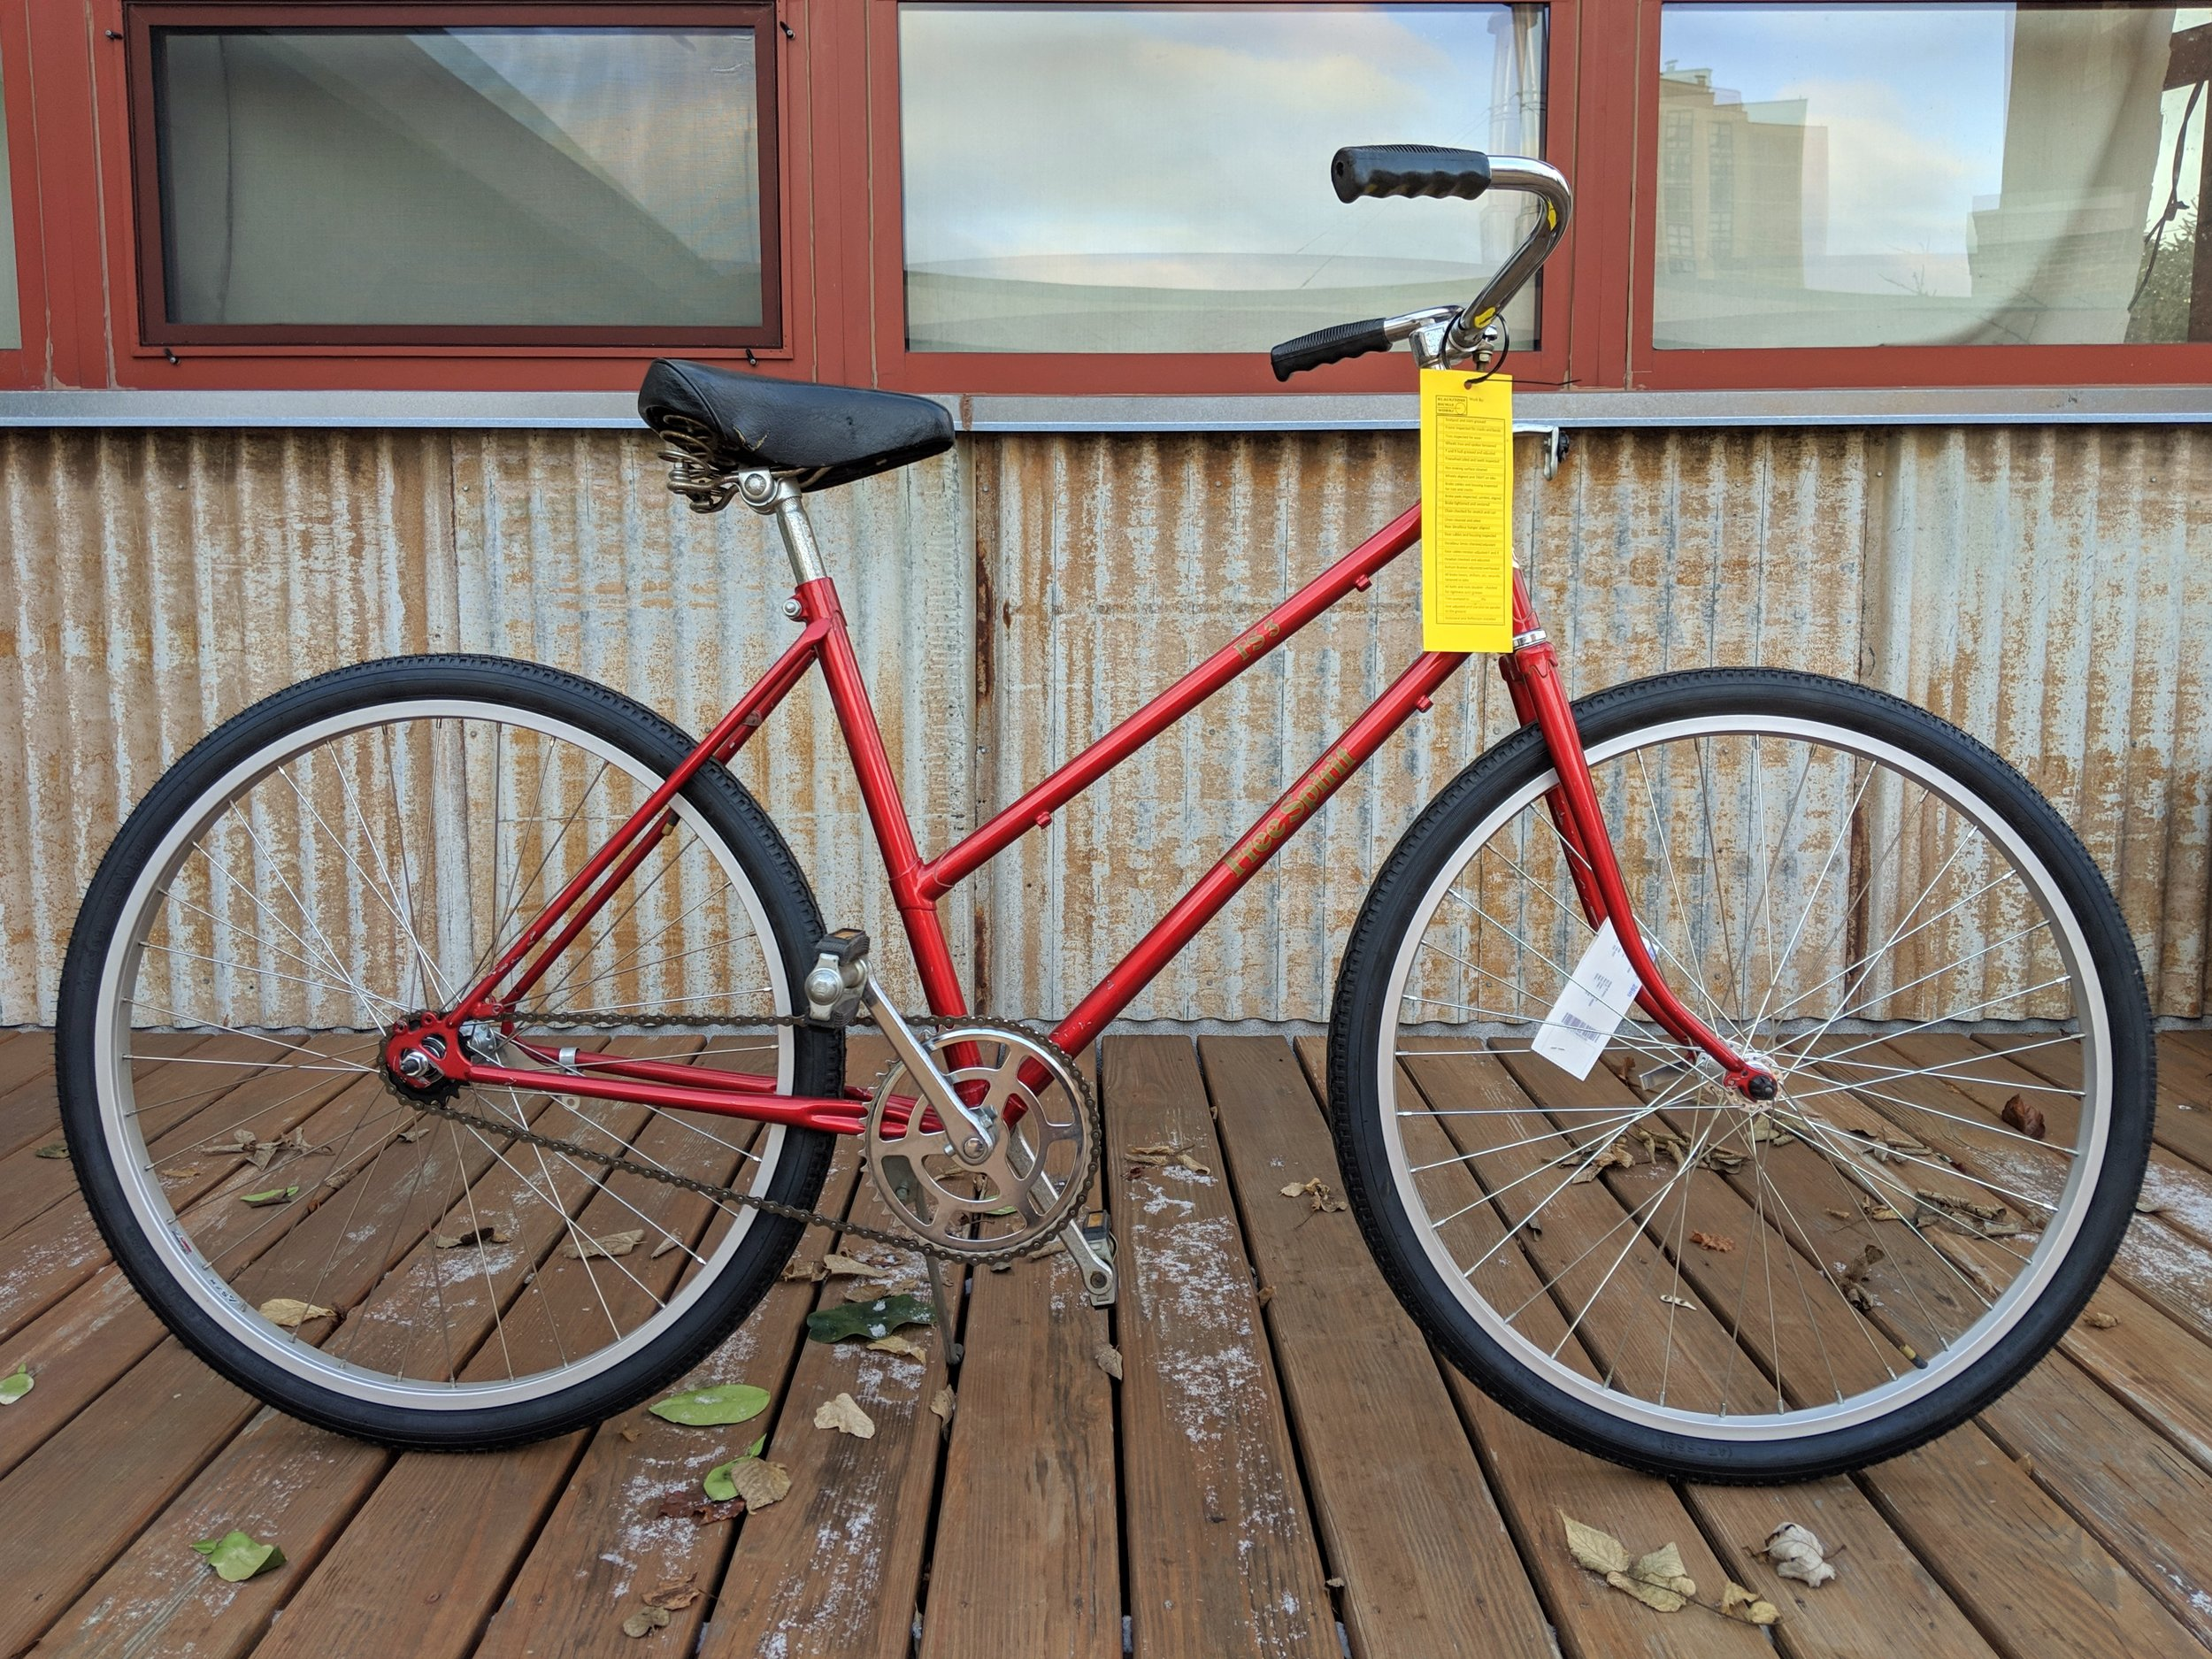 46cm Red Free Spirit Cruiser $225